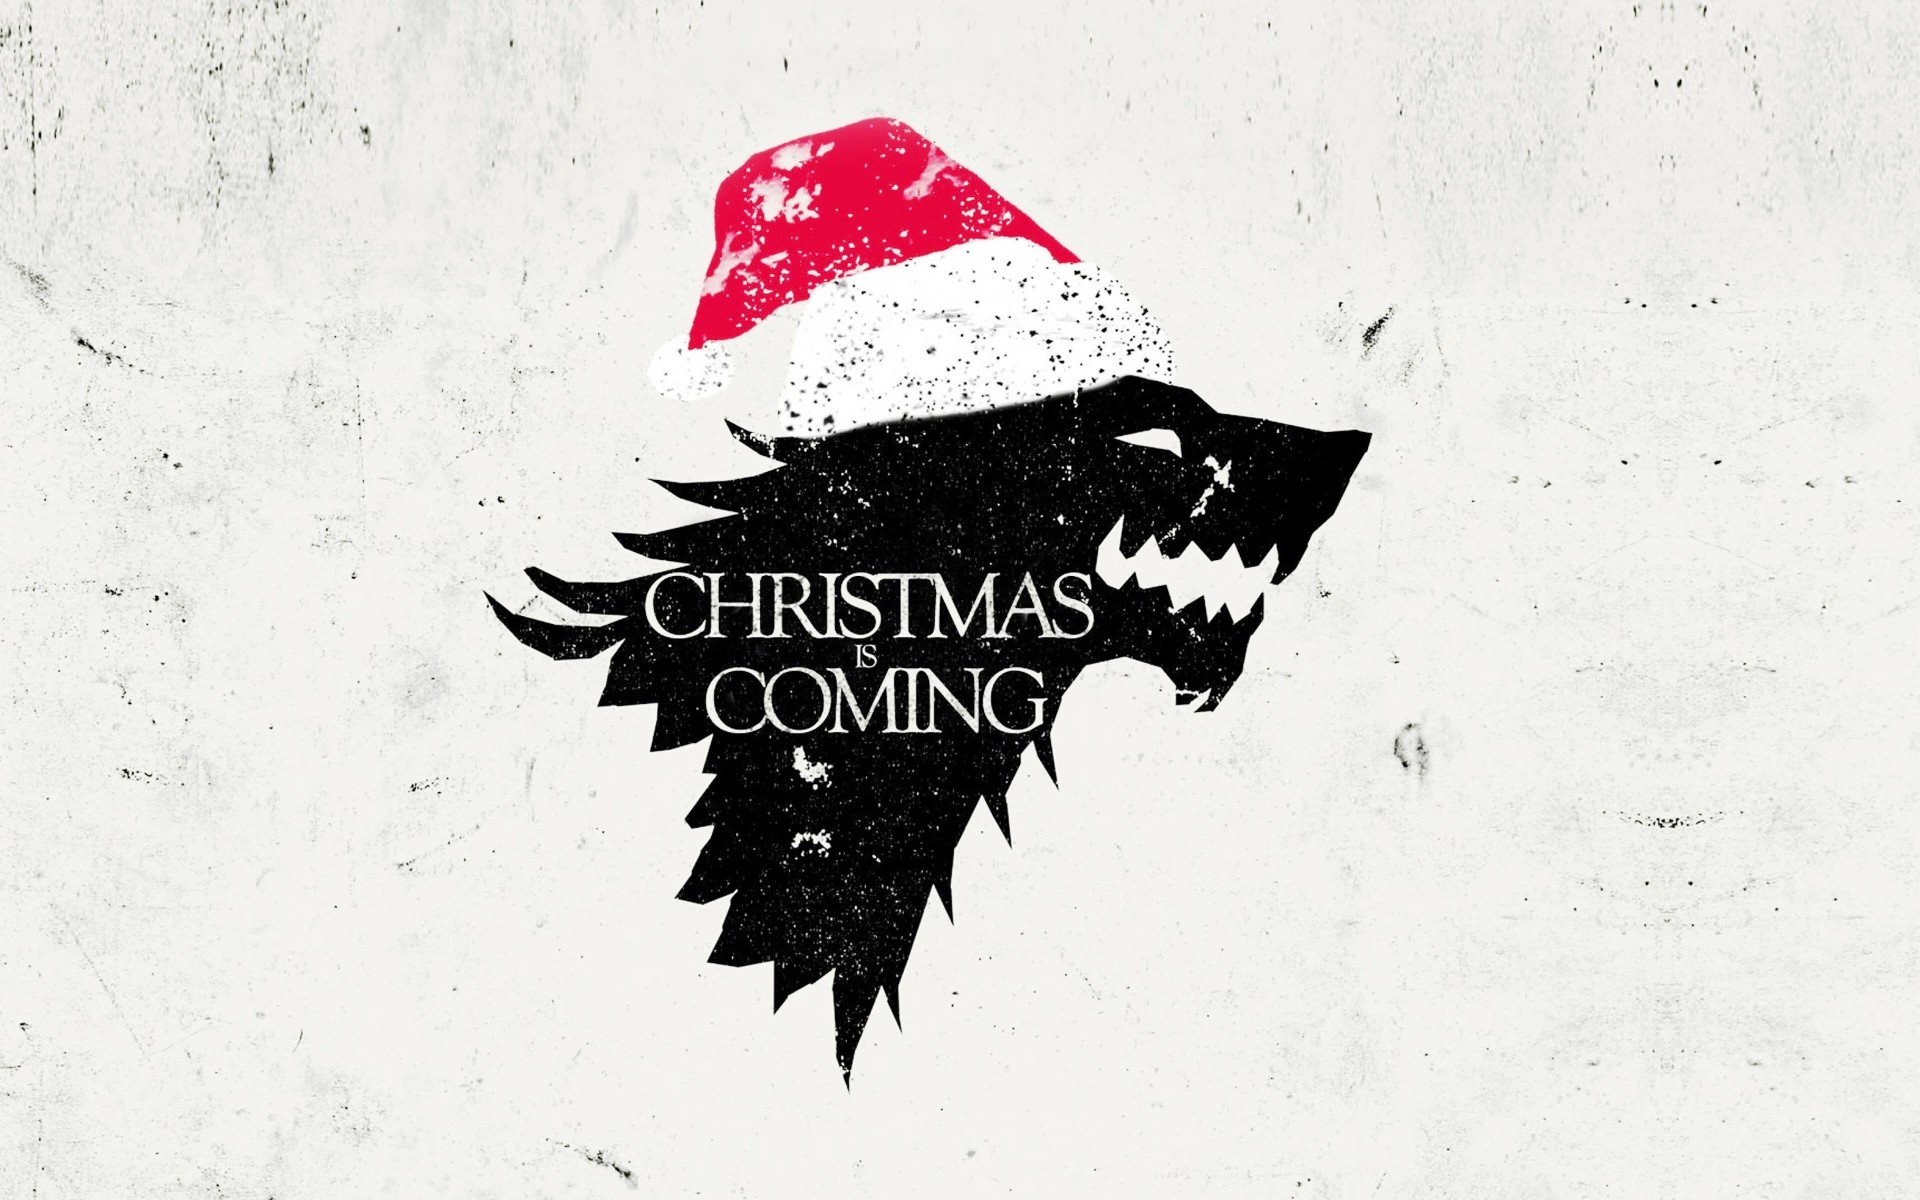 Christmas is Coming Wallpaper for Desktop 1920x1200